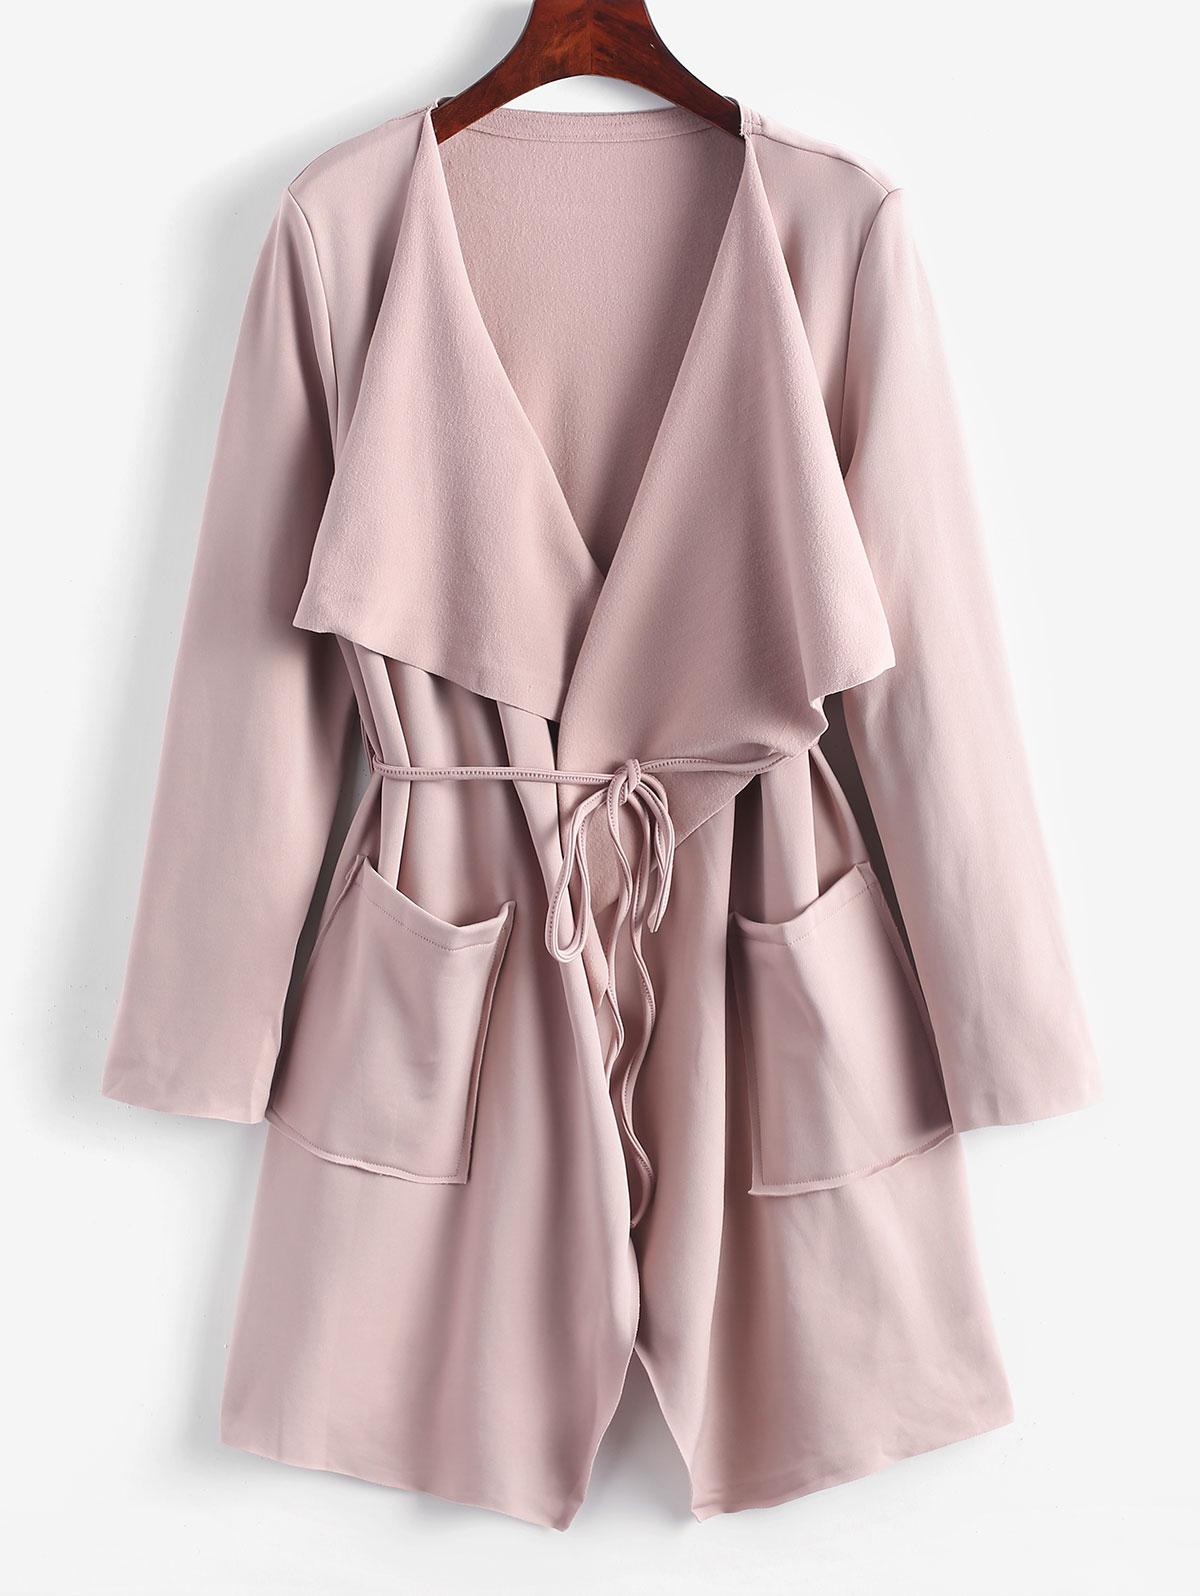 Belted Skirted Patched Pockets Waterfall Coat thumbnail